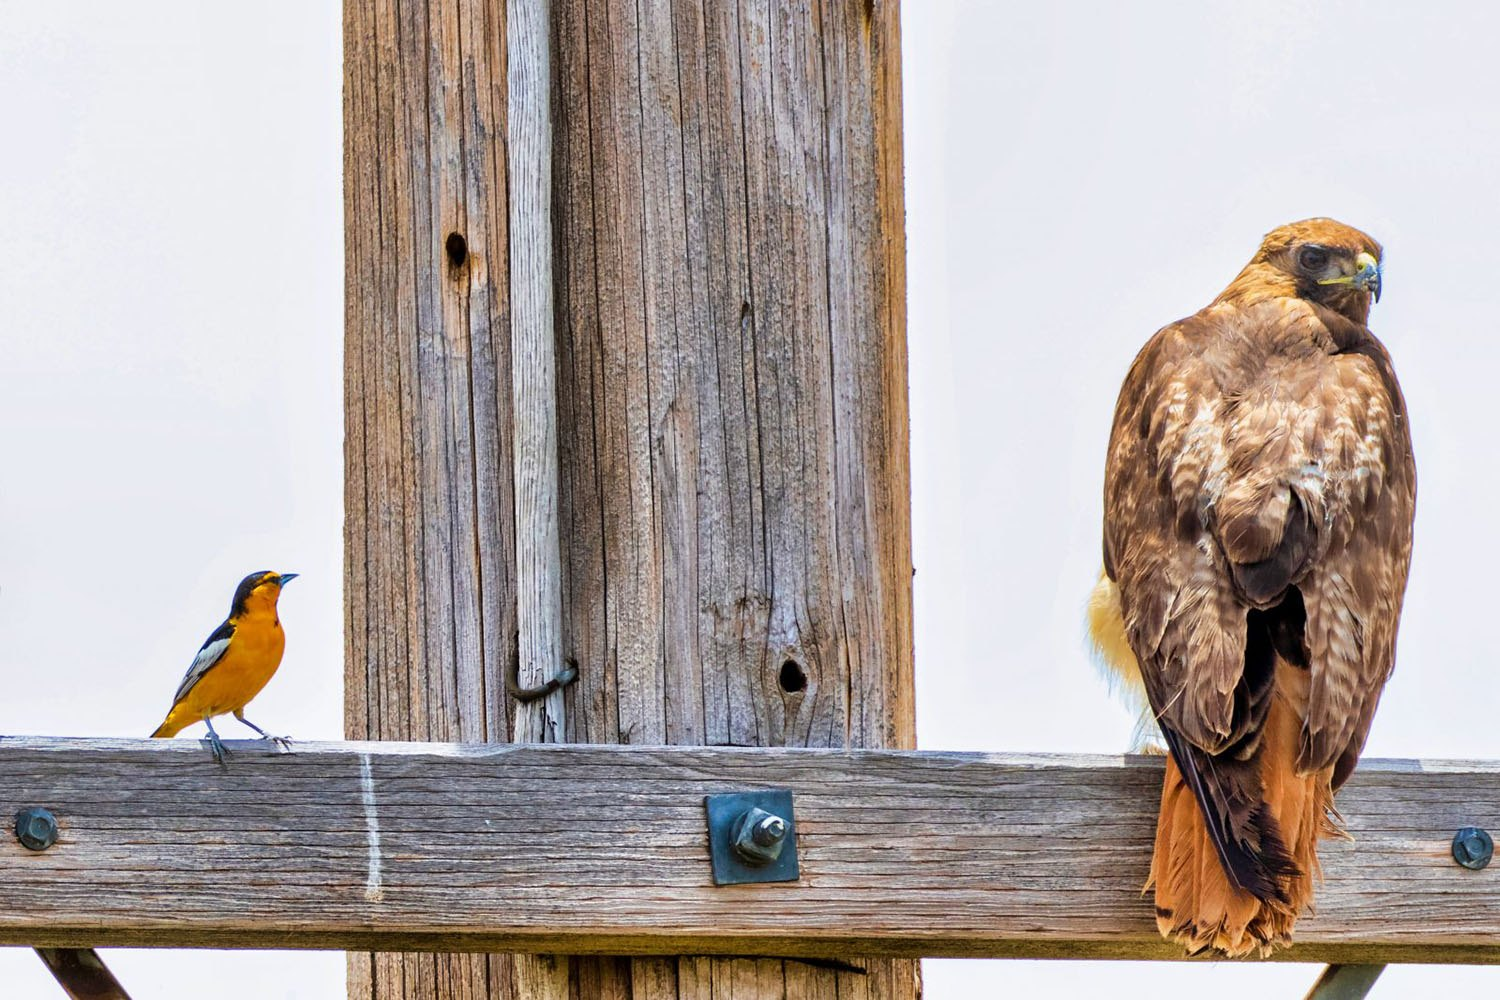 Bullock's Oriole and Red-tailed Hawk by Jason Stewart